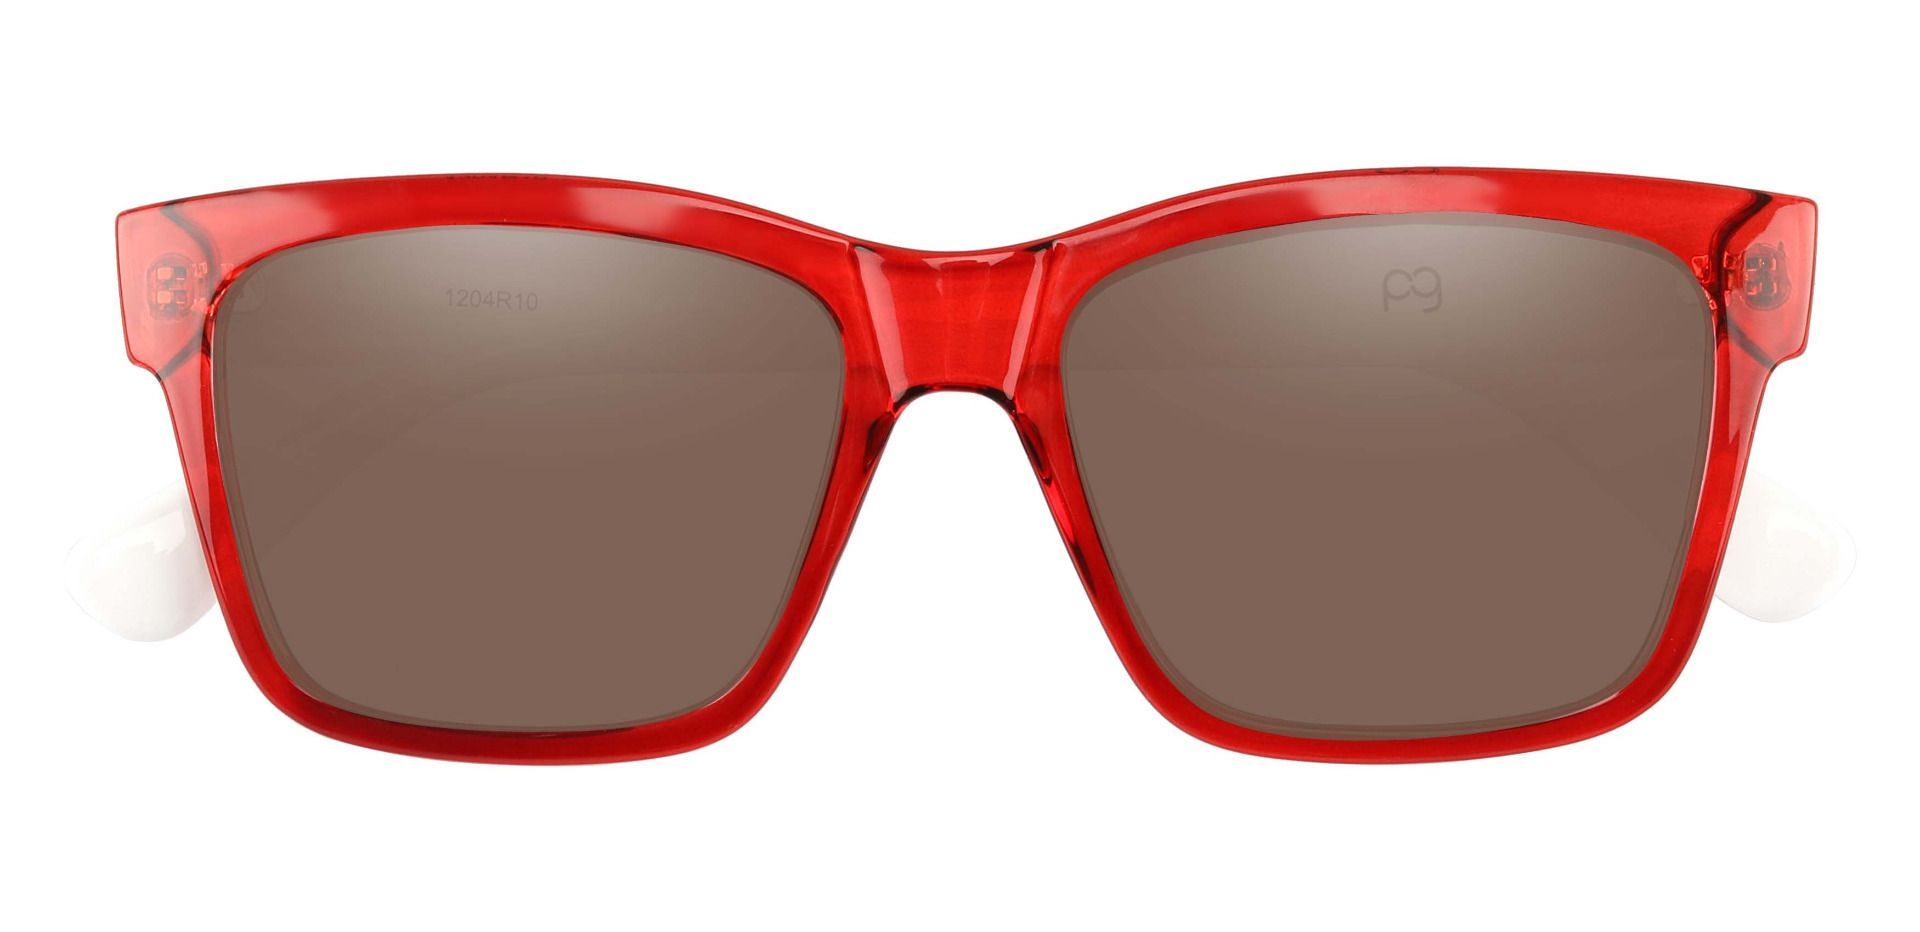 Brinley Square Progressive Sunglasses - Red Frame With Brown Lenses